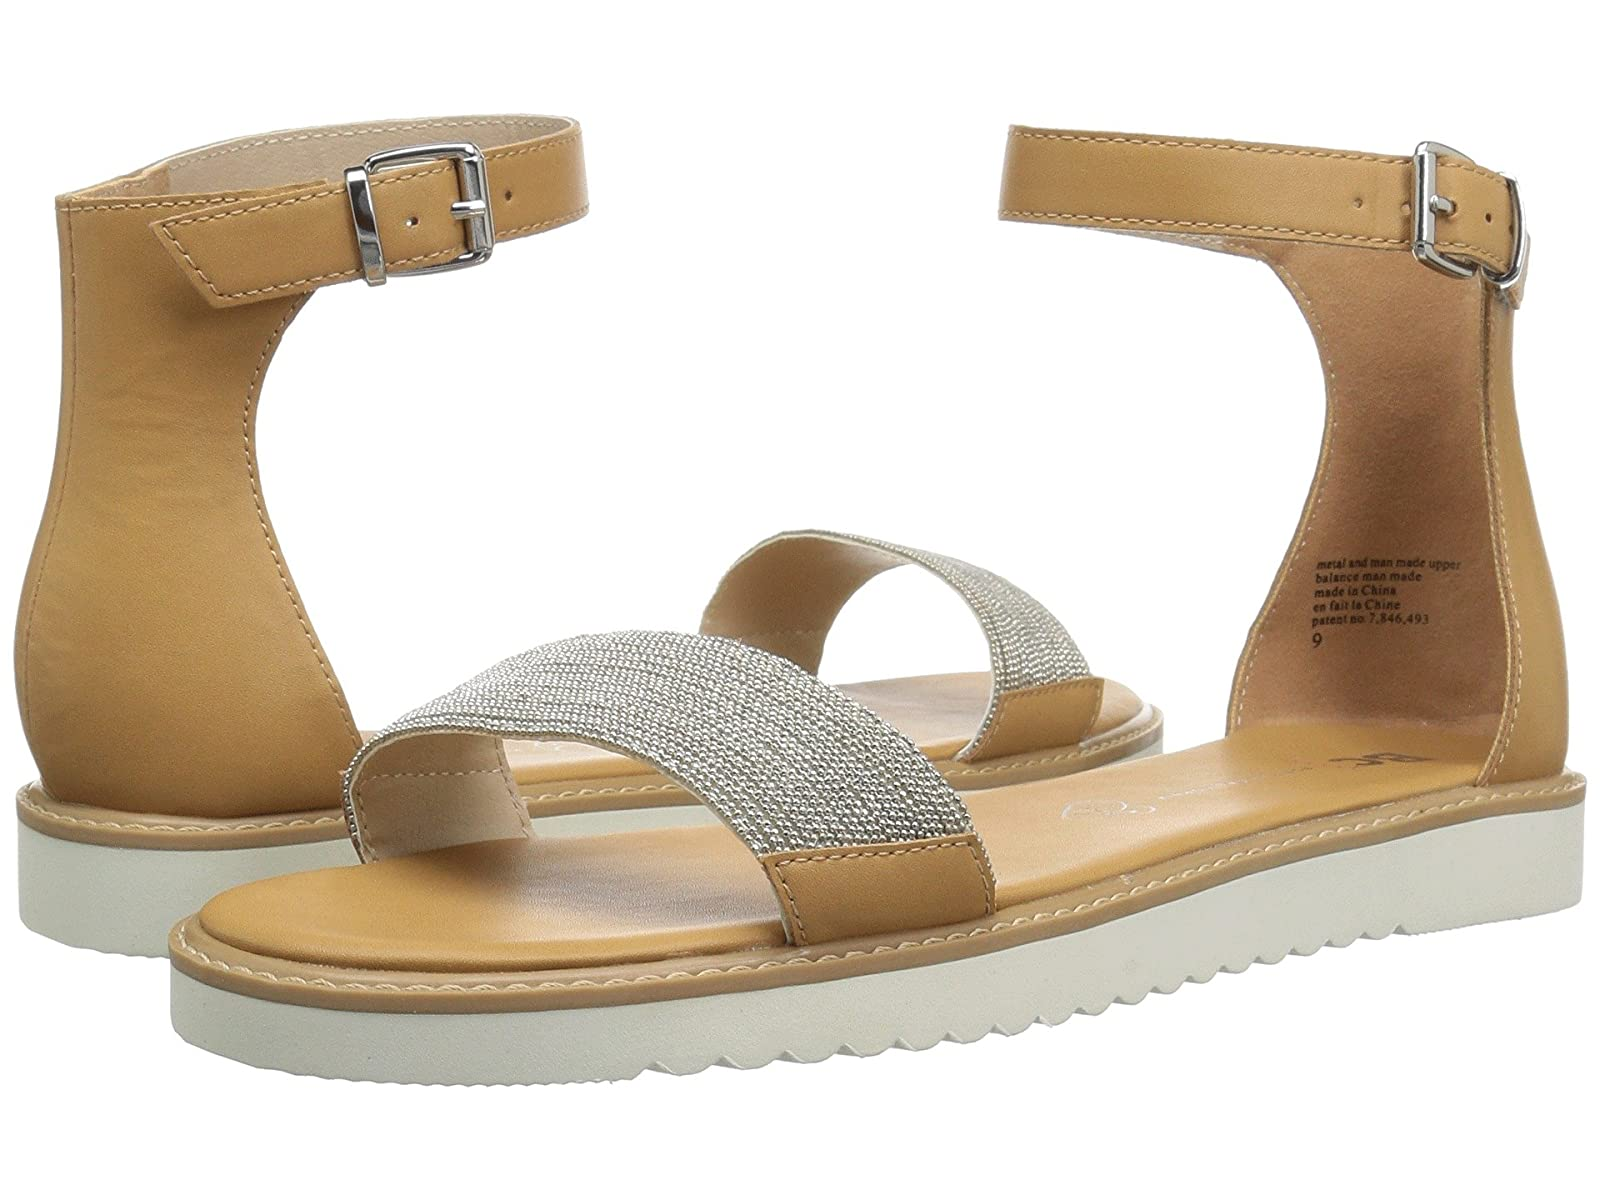 Seychelles BC Footwear by Seychelles Price Of AdmissionAtmospheric grades have affordable shoes